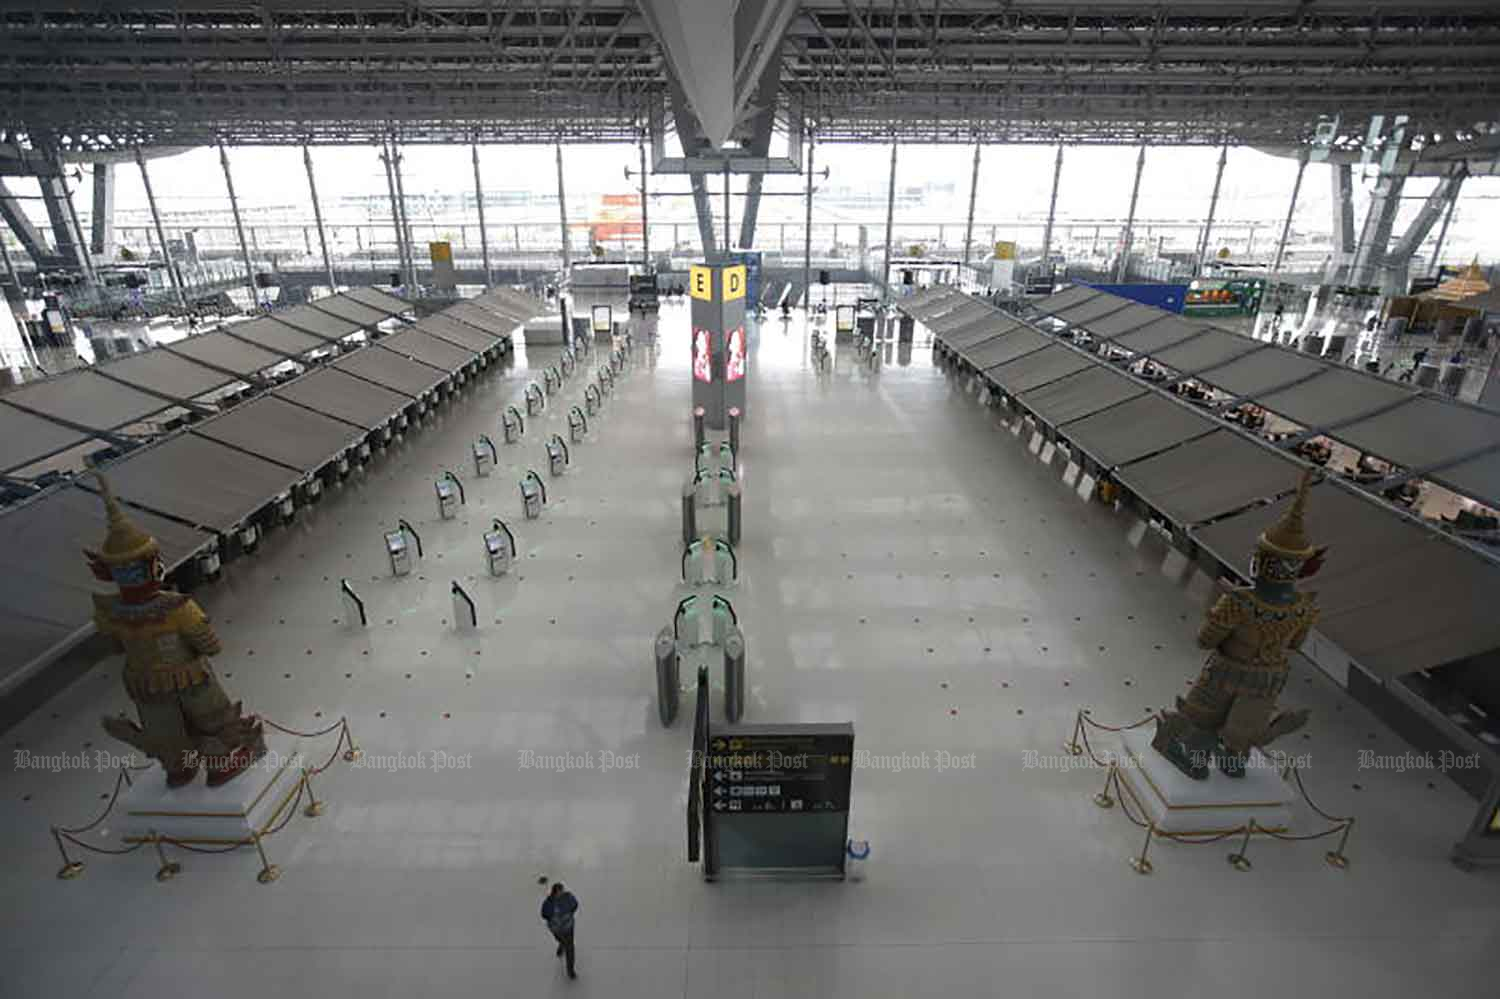 The departure hall at Suvarnabhumi airport is almost completely deserted on Monday after the Civil Aviation Authority of Thailand banned airlines from operating fligths to and from 'dark red' zones, including Bangkok, on Sunday. (Photo: Wichan Charoenkiatpakul)